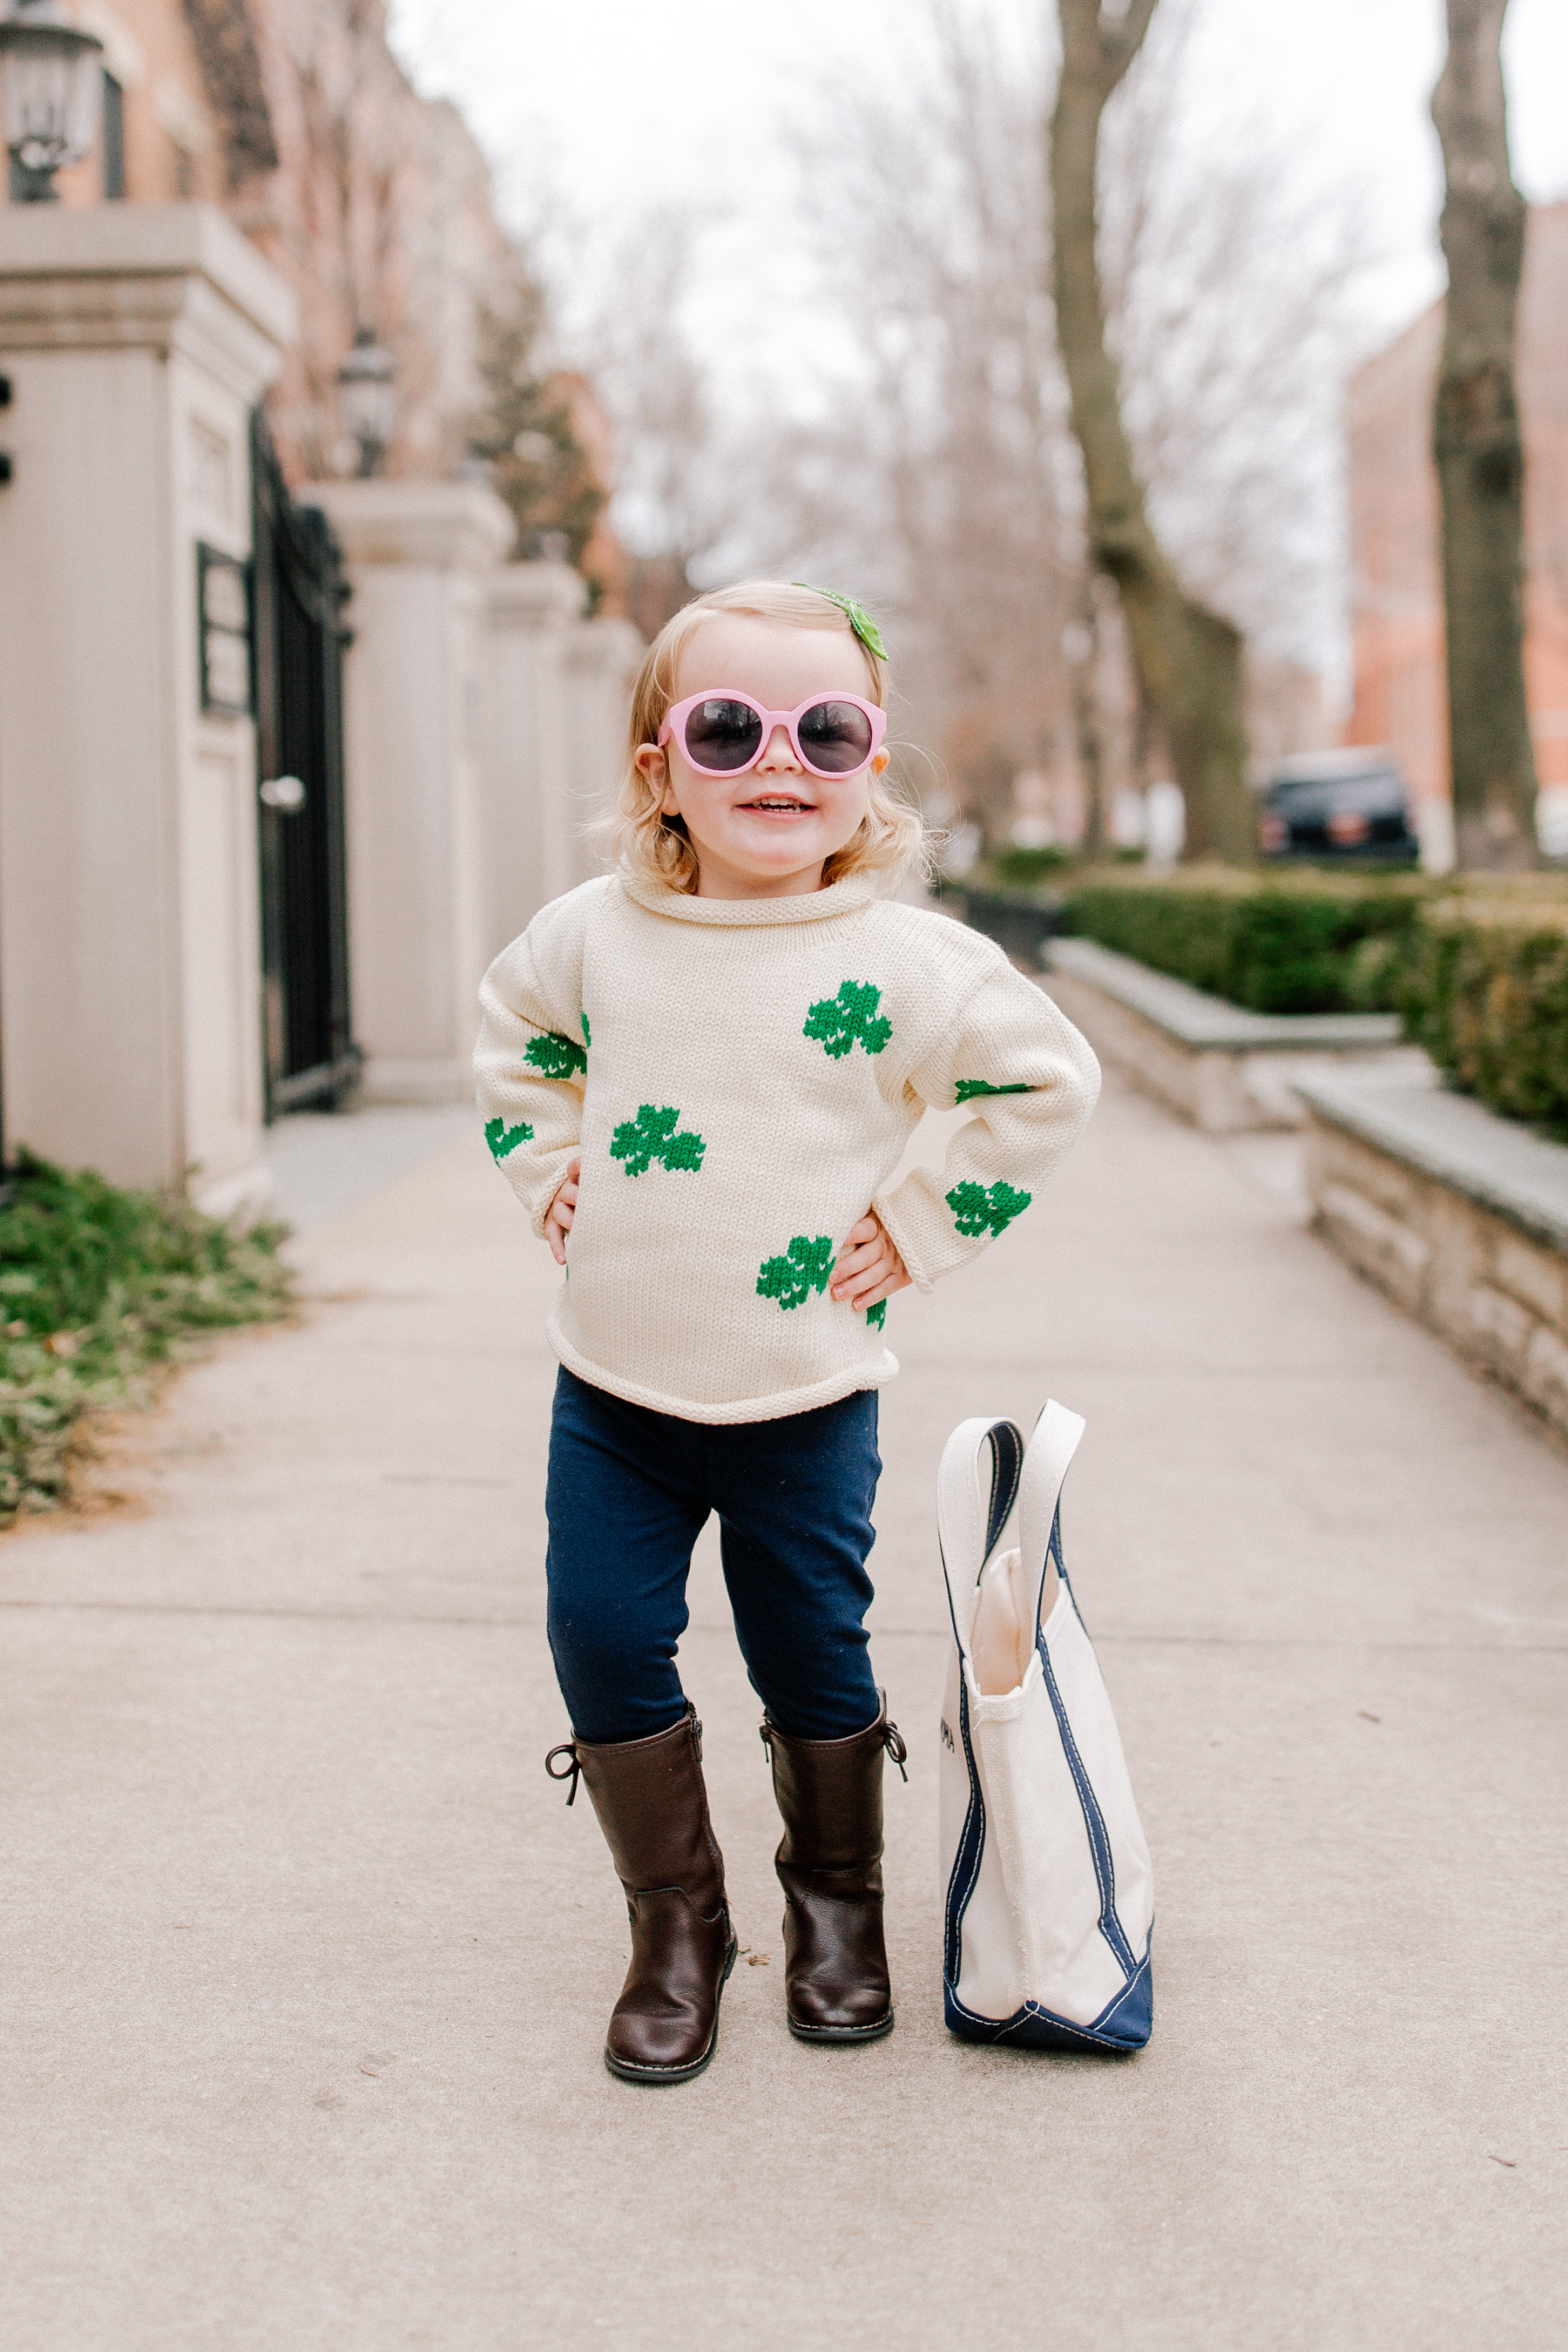 Emma is featuring a Claver Shamrock Sweater / L.L. Bean Tote c/o / Gap Kids Jeggings and Boots / Janie & Jack Sunglasses / Little Makes Big Bow c/o